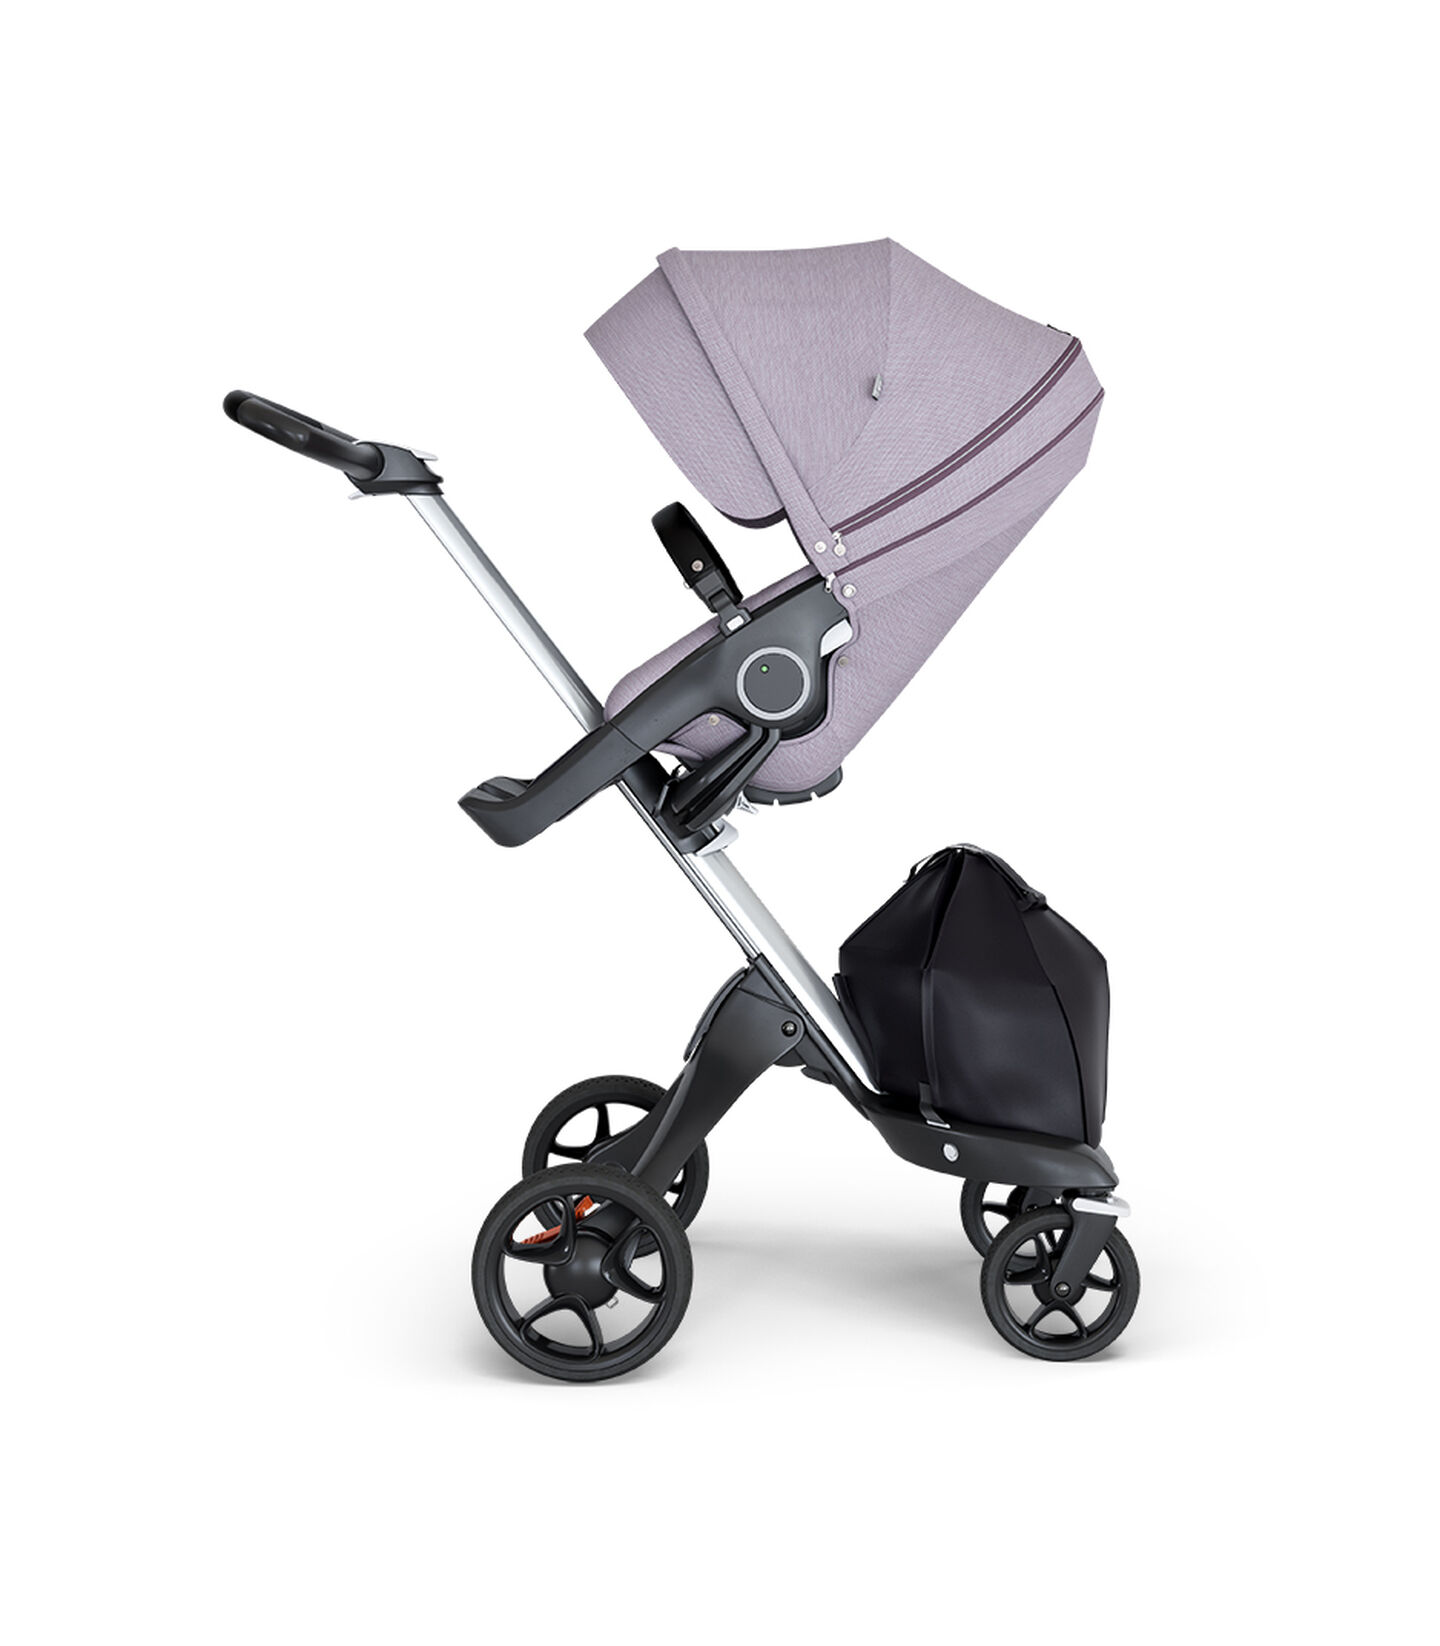 Stokke® Xplory® wtih Silver Chassis and Leatherette Black handle. Stokke® Stroller Seat Brushed Lilac. view 1